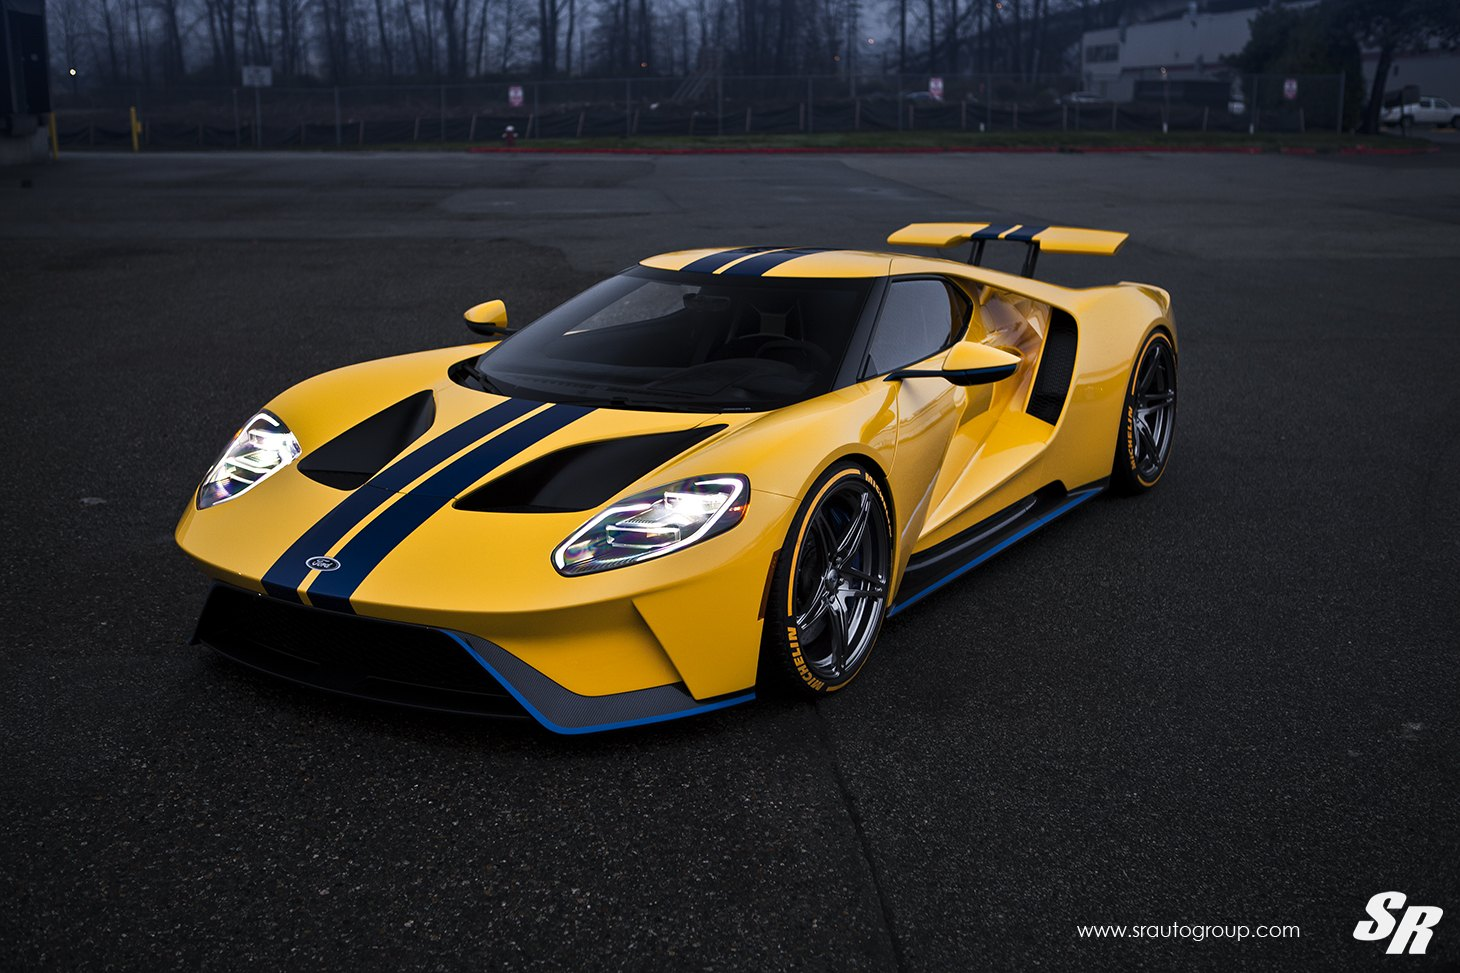 Custom U Bar Style Headlights On Yellow Ford Gt Photo By Sr Auto Group